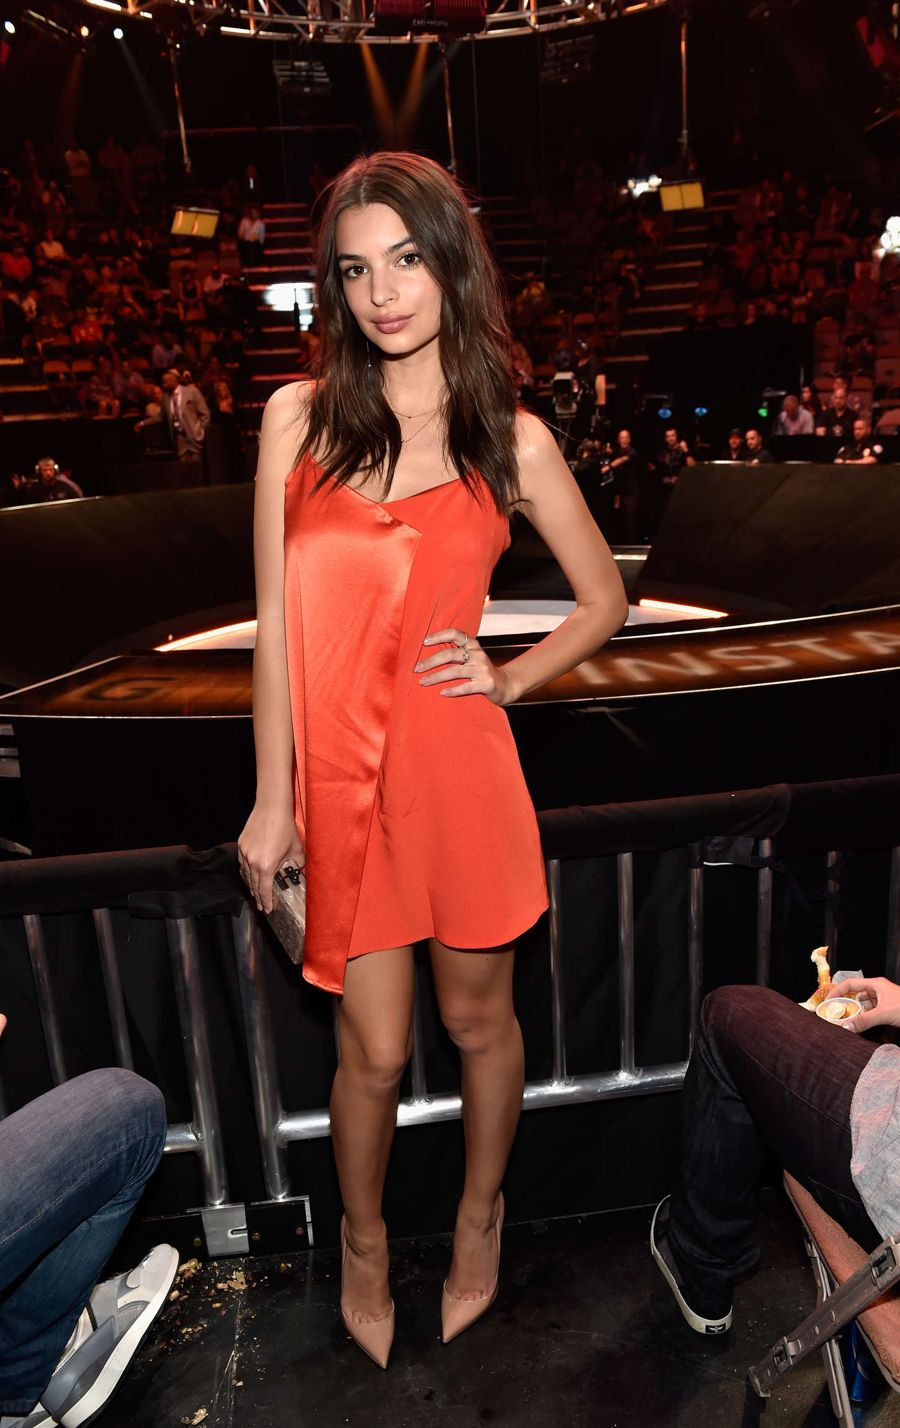 Emily Ratajkowski - BKB 2 Big Knockout Boxing in Las Vegas